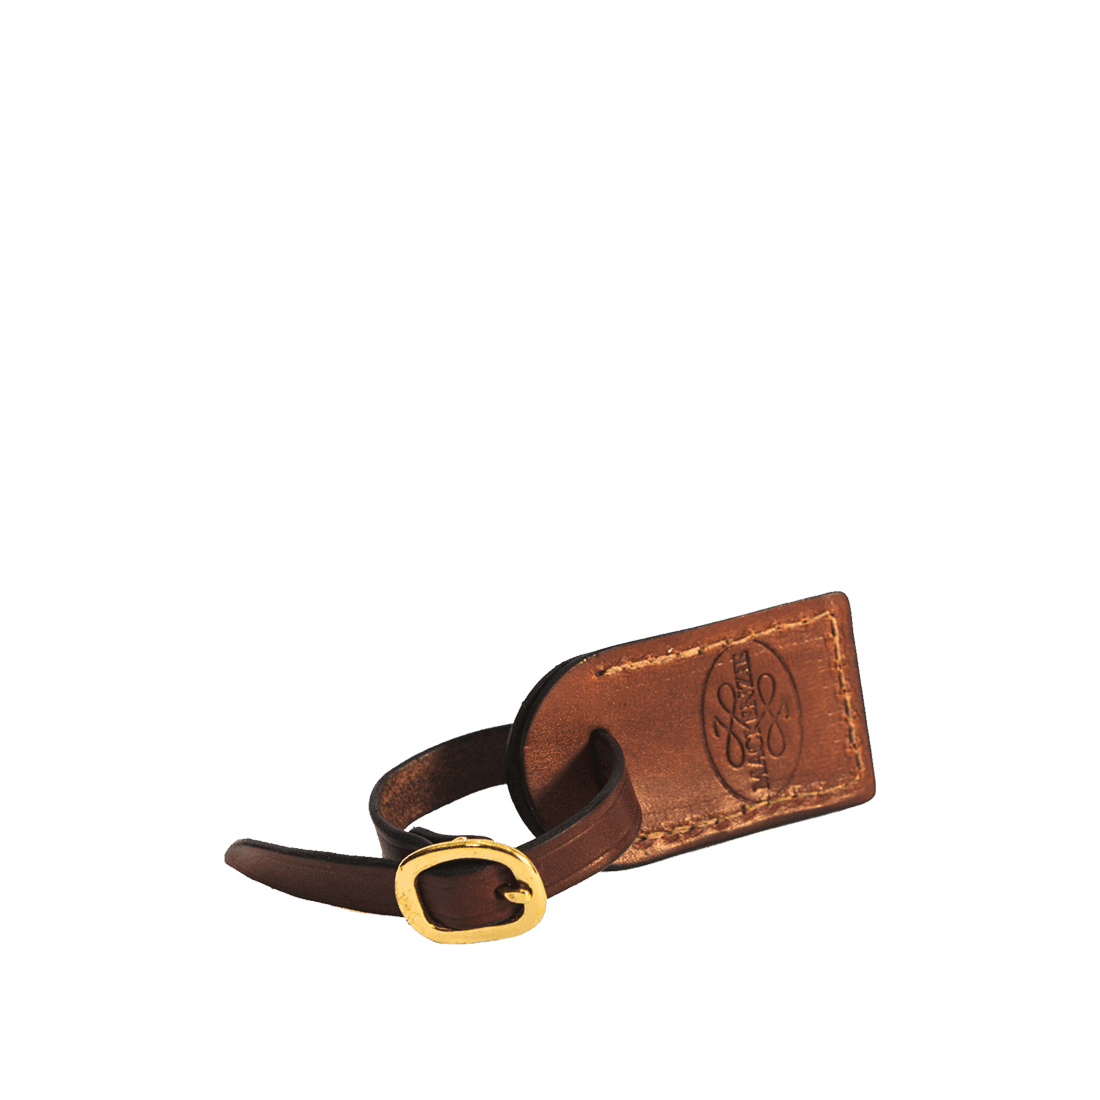 The luggage tag antique brown